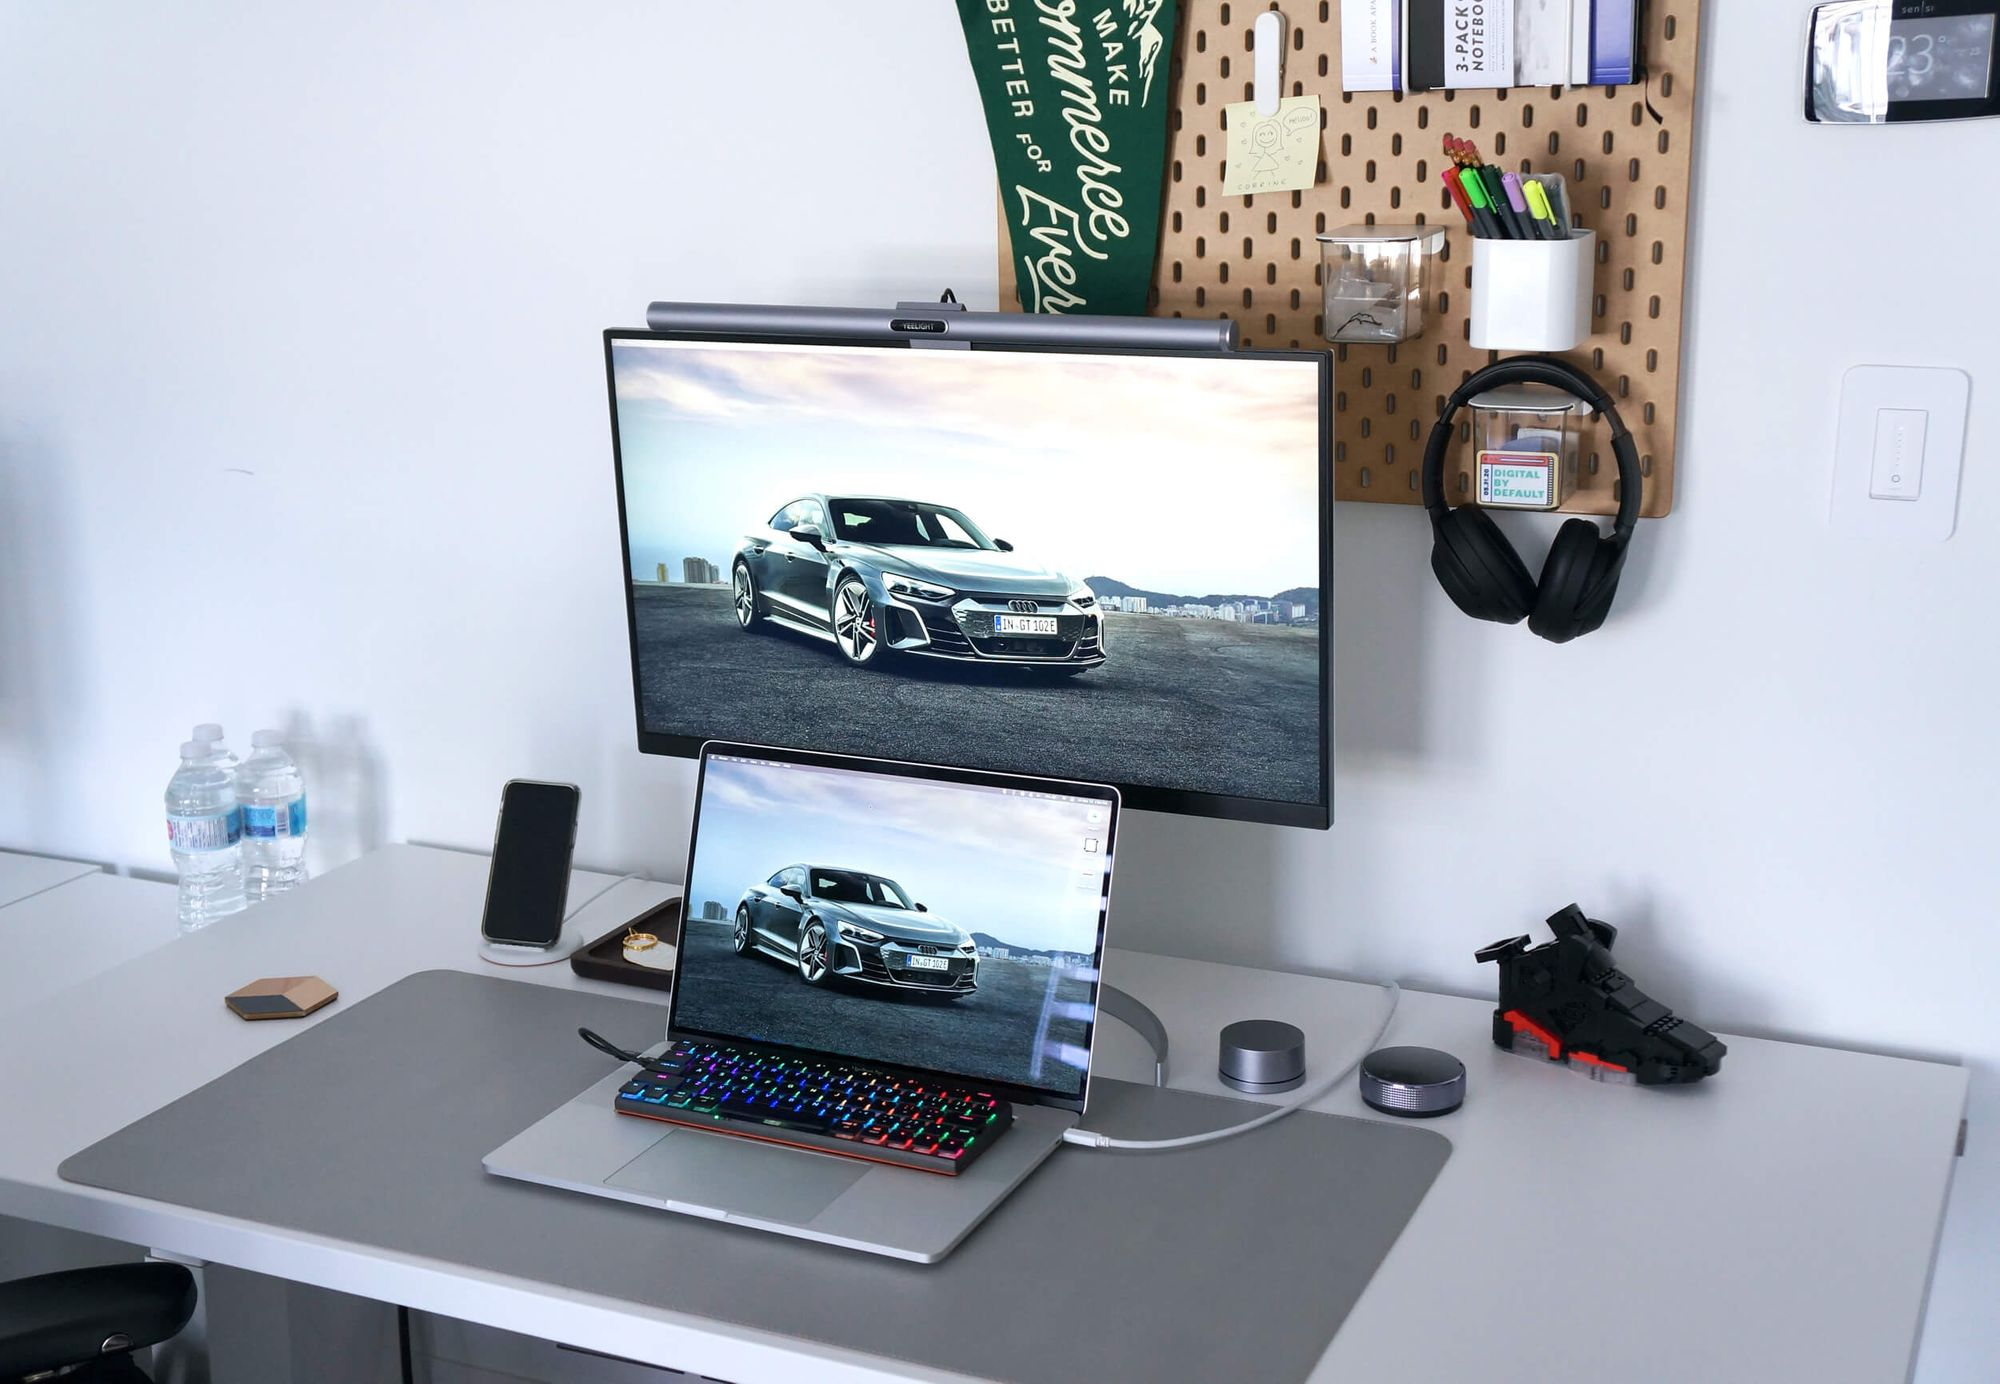 Kevin says that minimal look but high functionality for storing things help keep his desk clean and tidy